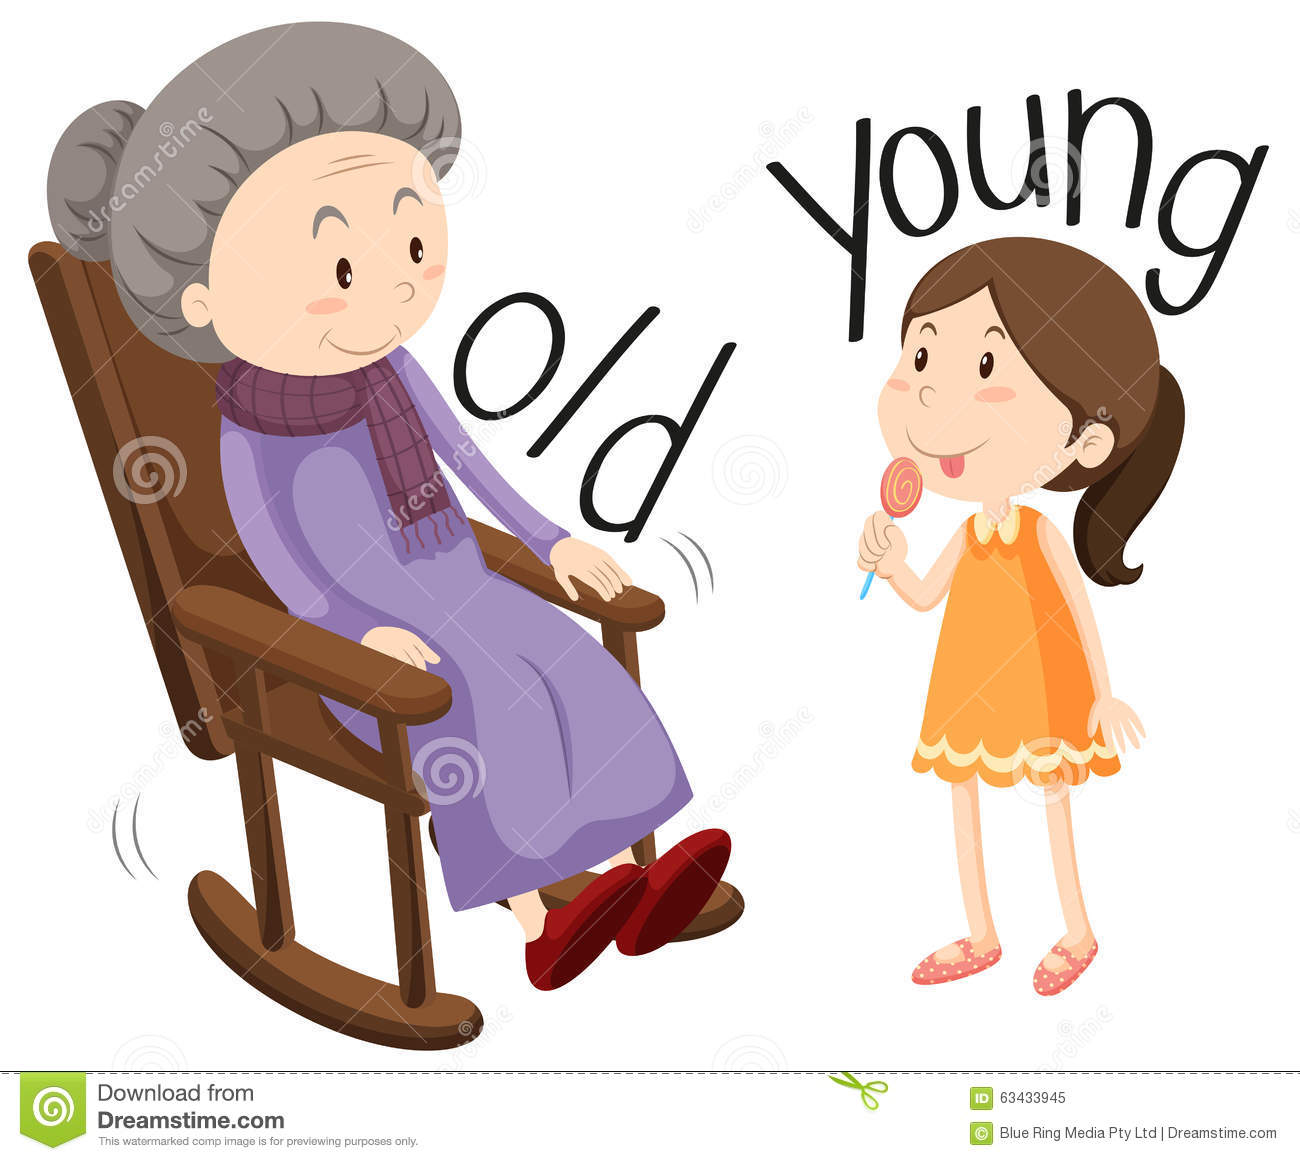 Old young clipart.